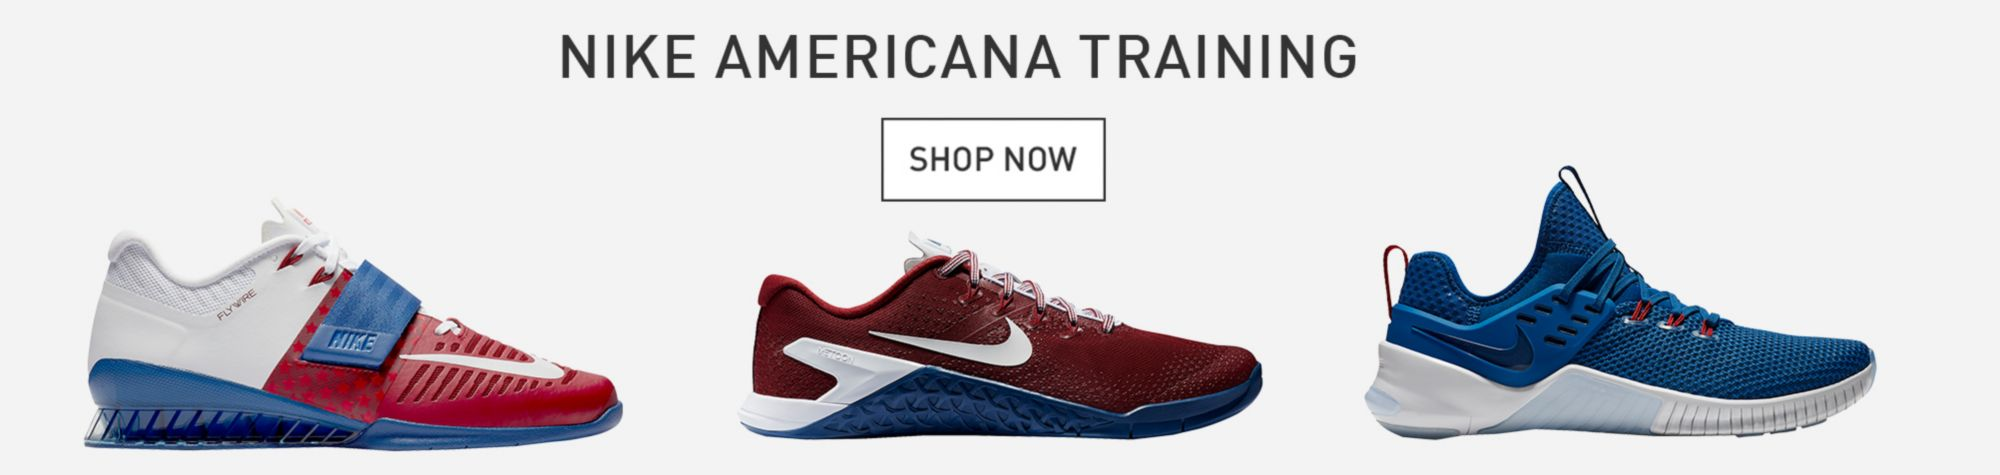 Nike Americana Training Footwear